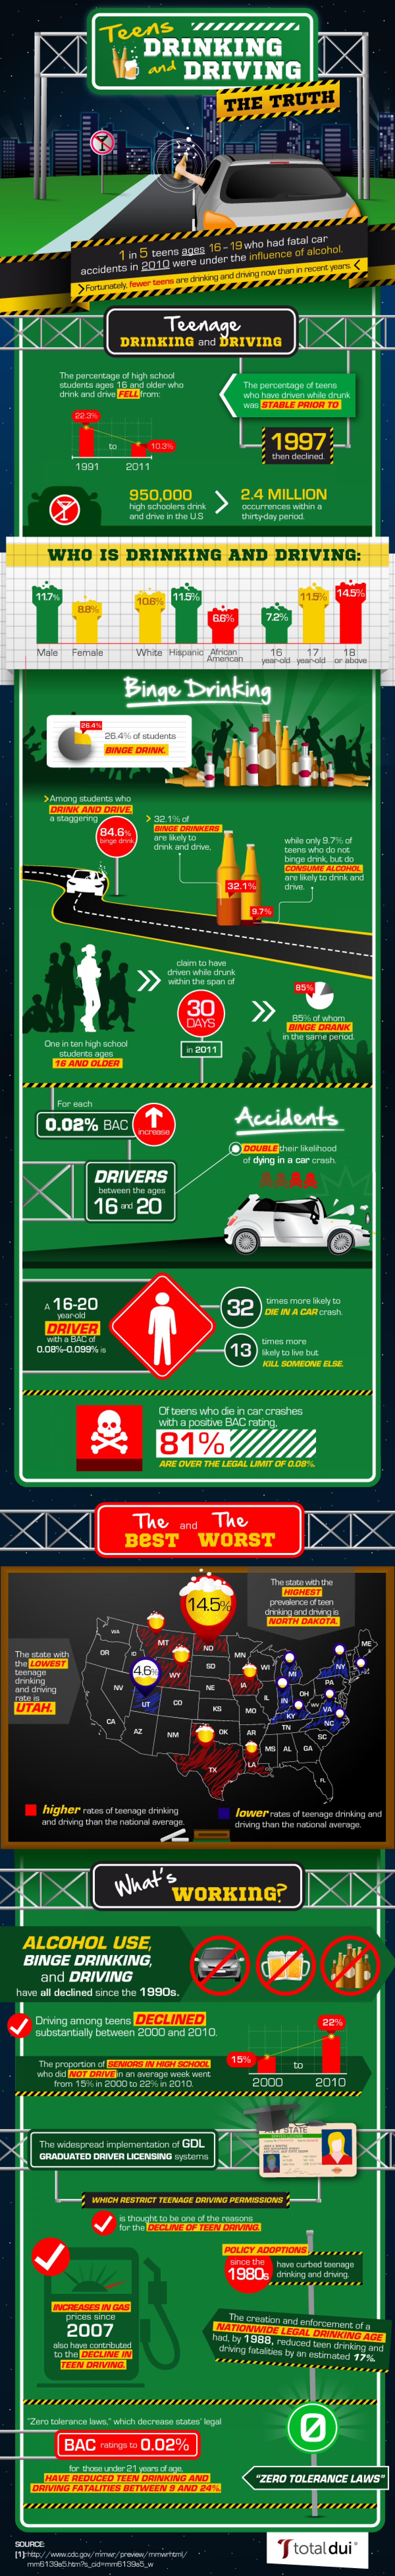 The Decline in the Number of Teens Drinking and Driving Infographic